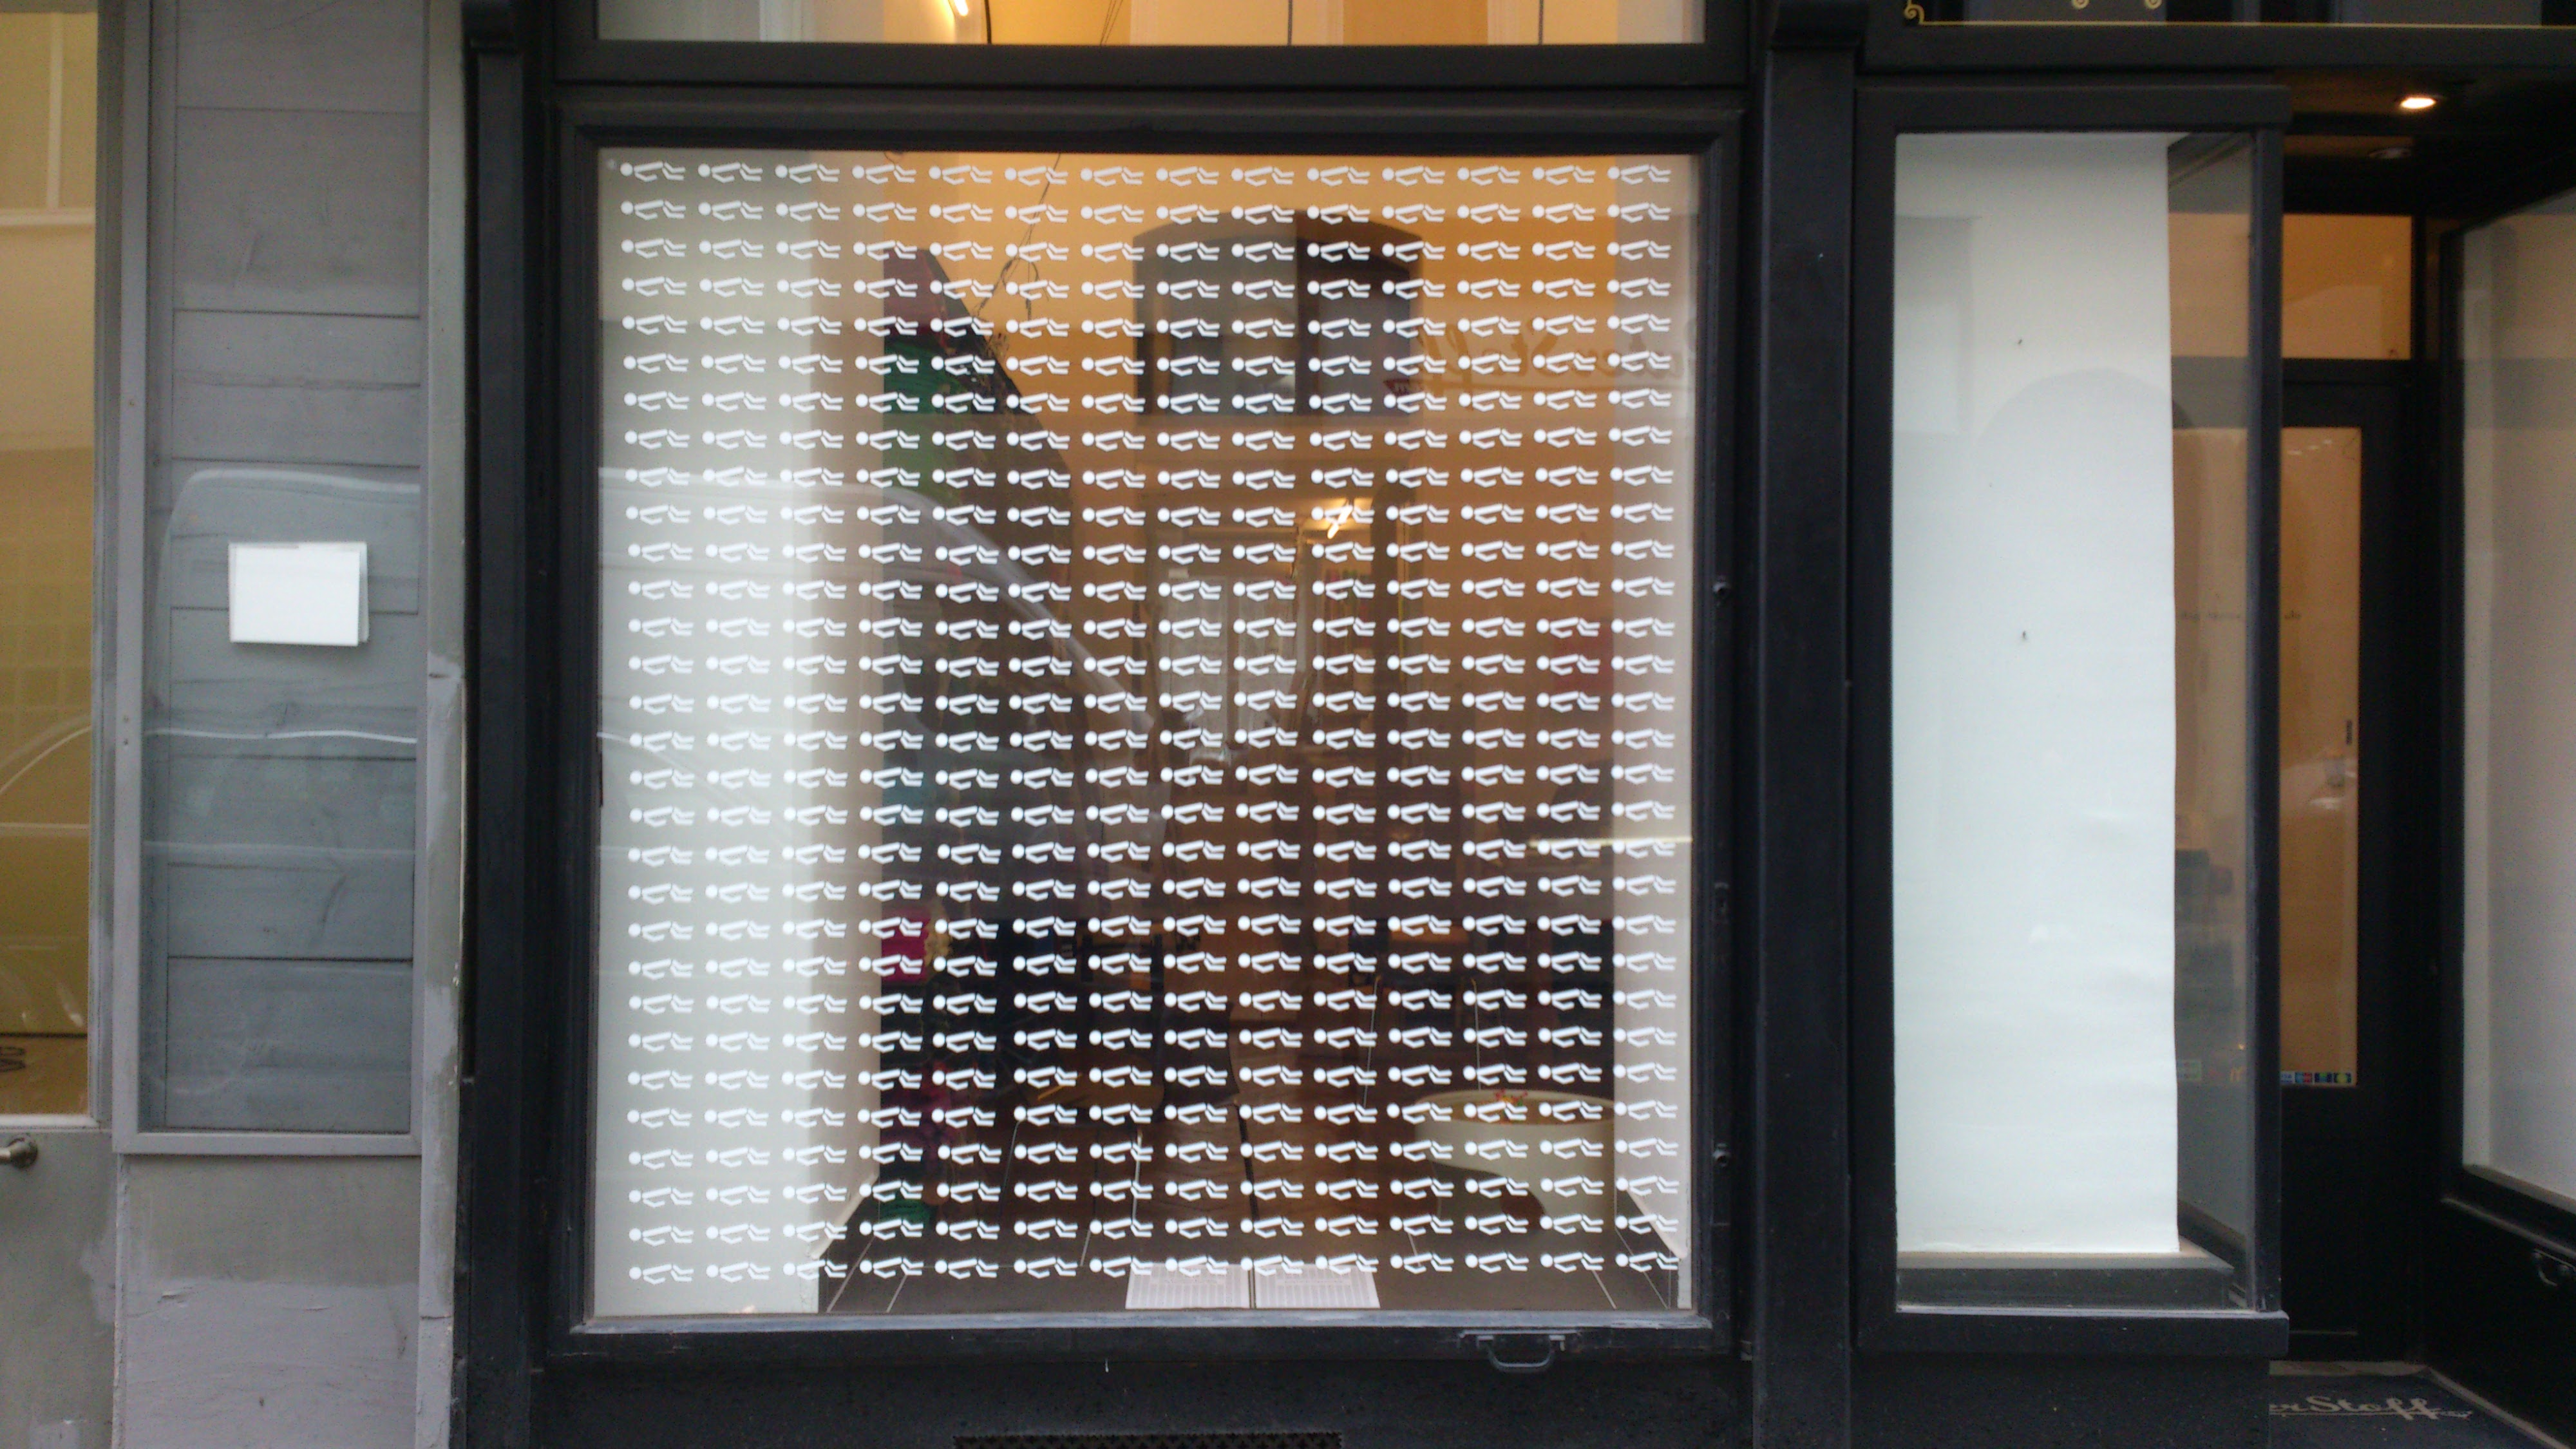 400 refugee victims storefront with 400+ pictograms